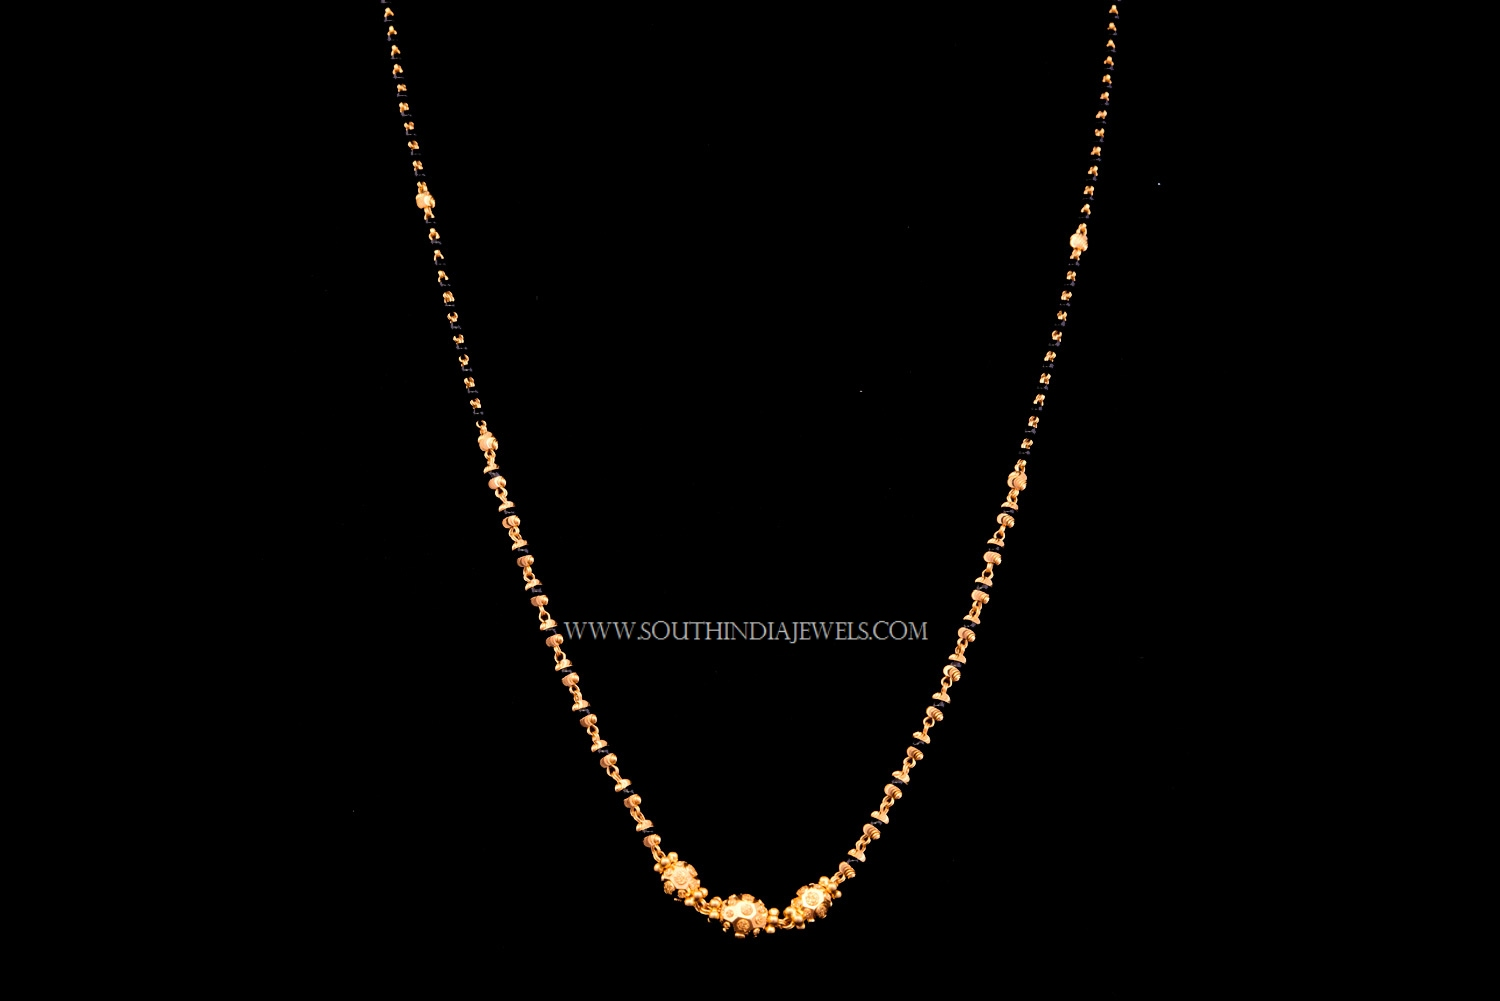 necklace design gold indian designs simple hd wallpapers